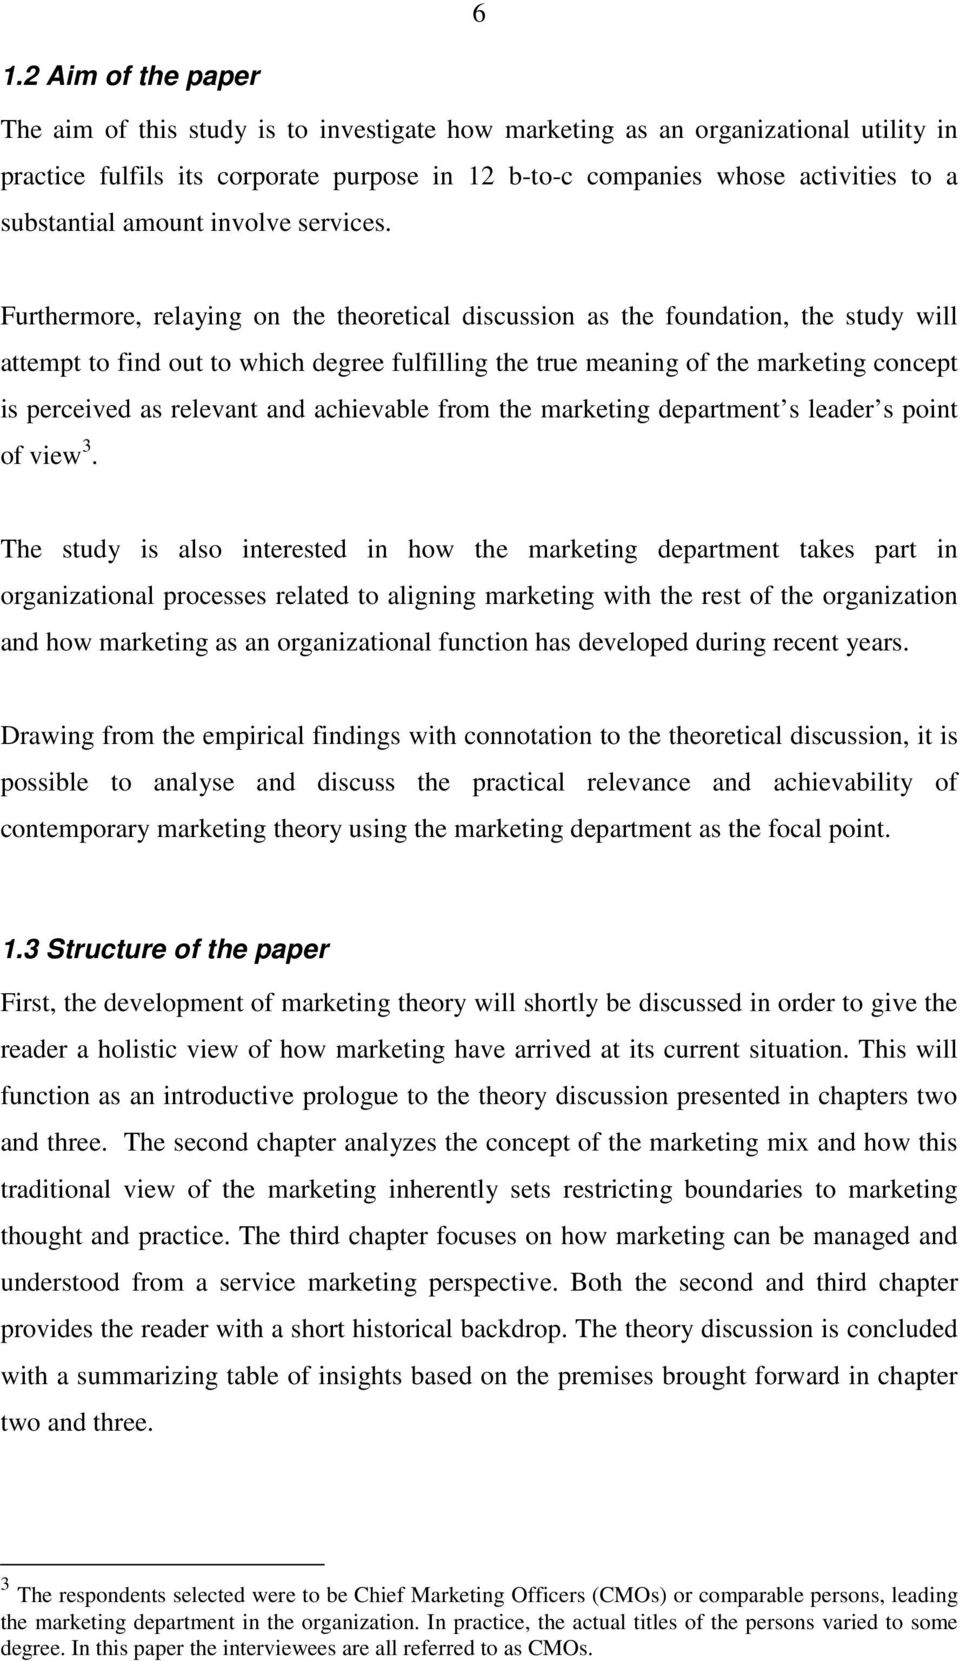 Furthermore, relaying on the theoretical discussion as the foundation, the study will attempt to find out to which degree fulfilling the true meaning of the marketing concept is perceived as relevant